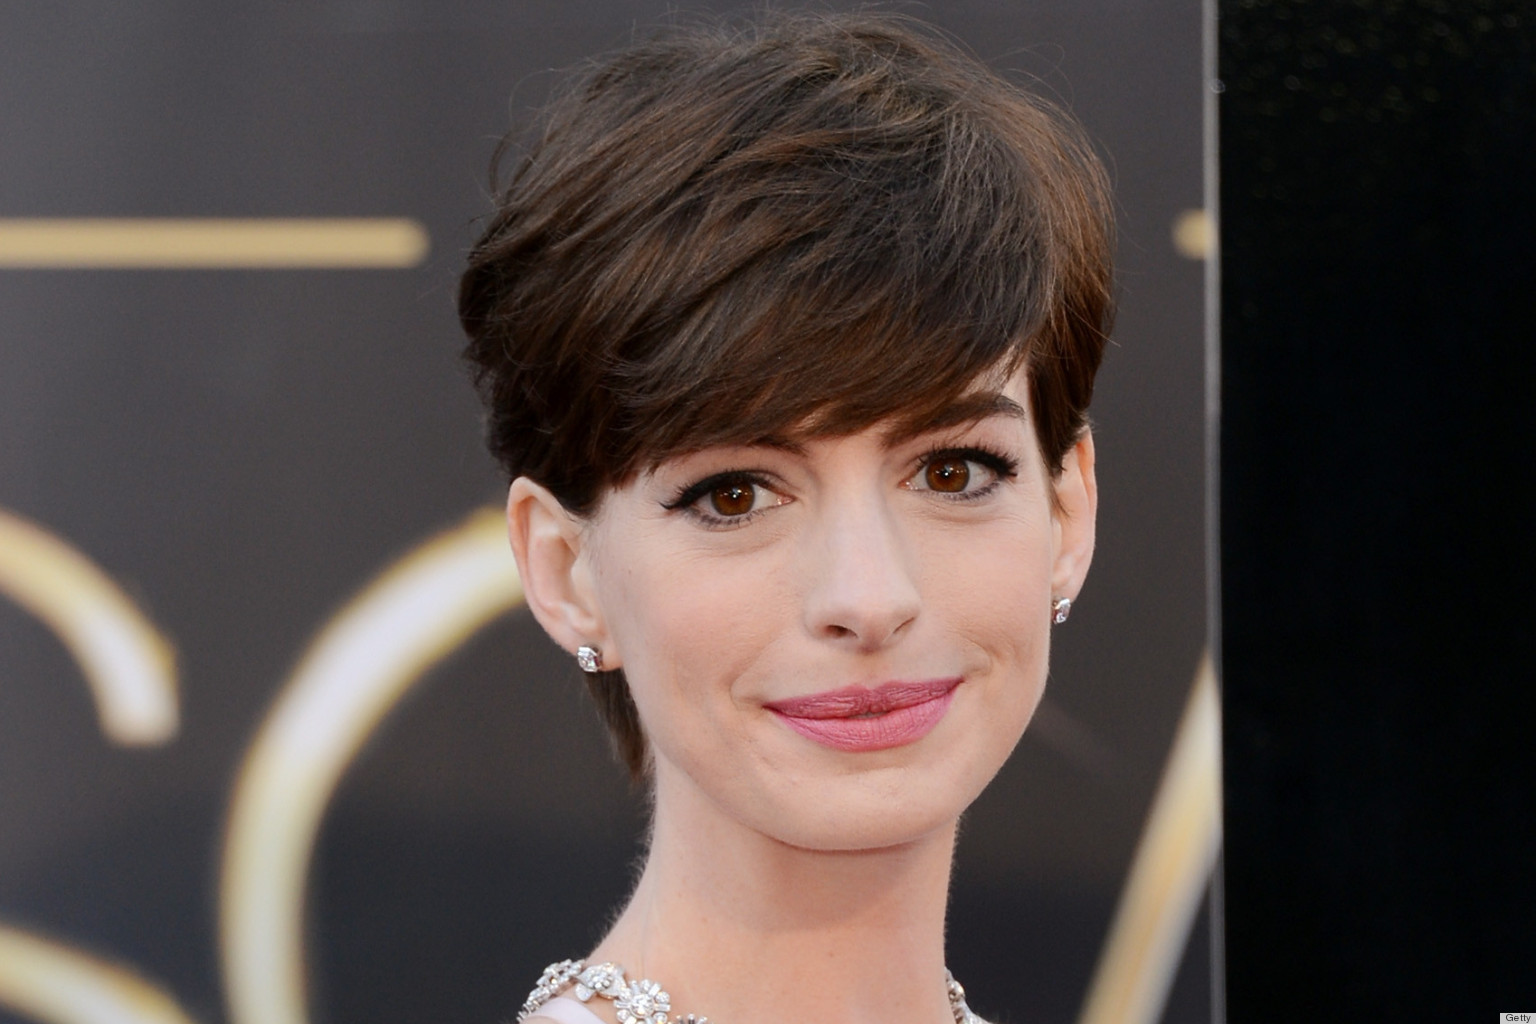 Best Teats Pictures to Pin on Pinterest - PinsDaddy Anne Hathaway Facebook